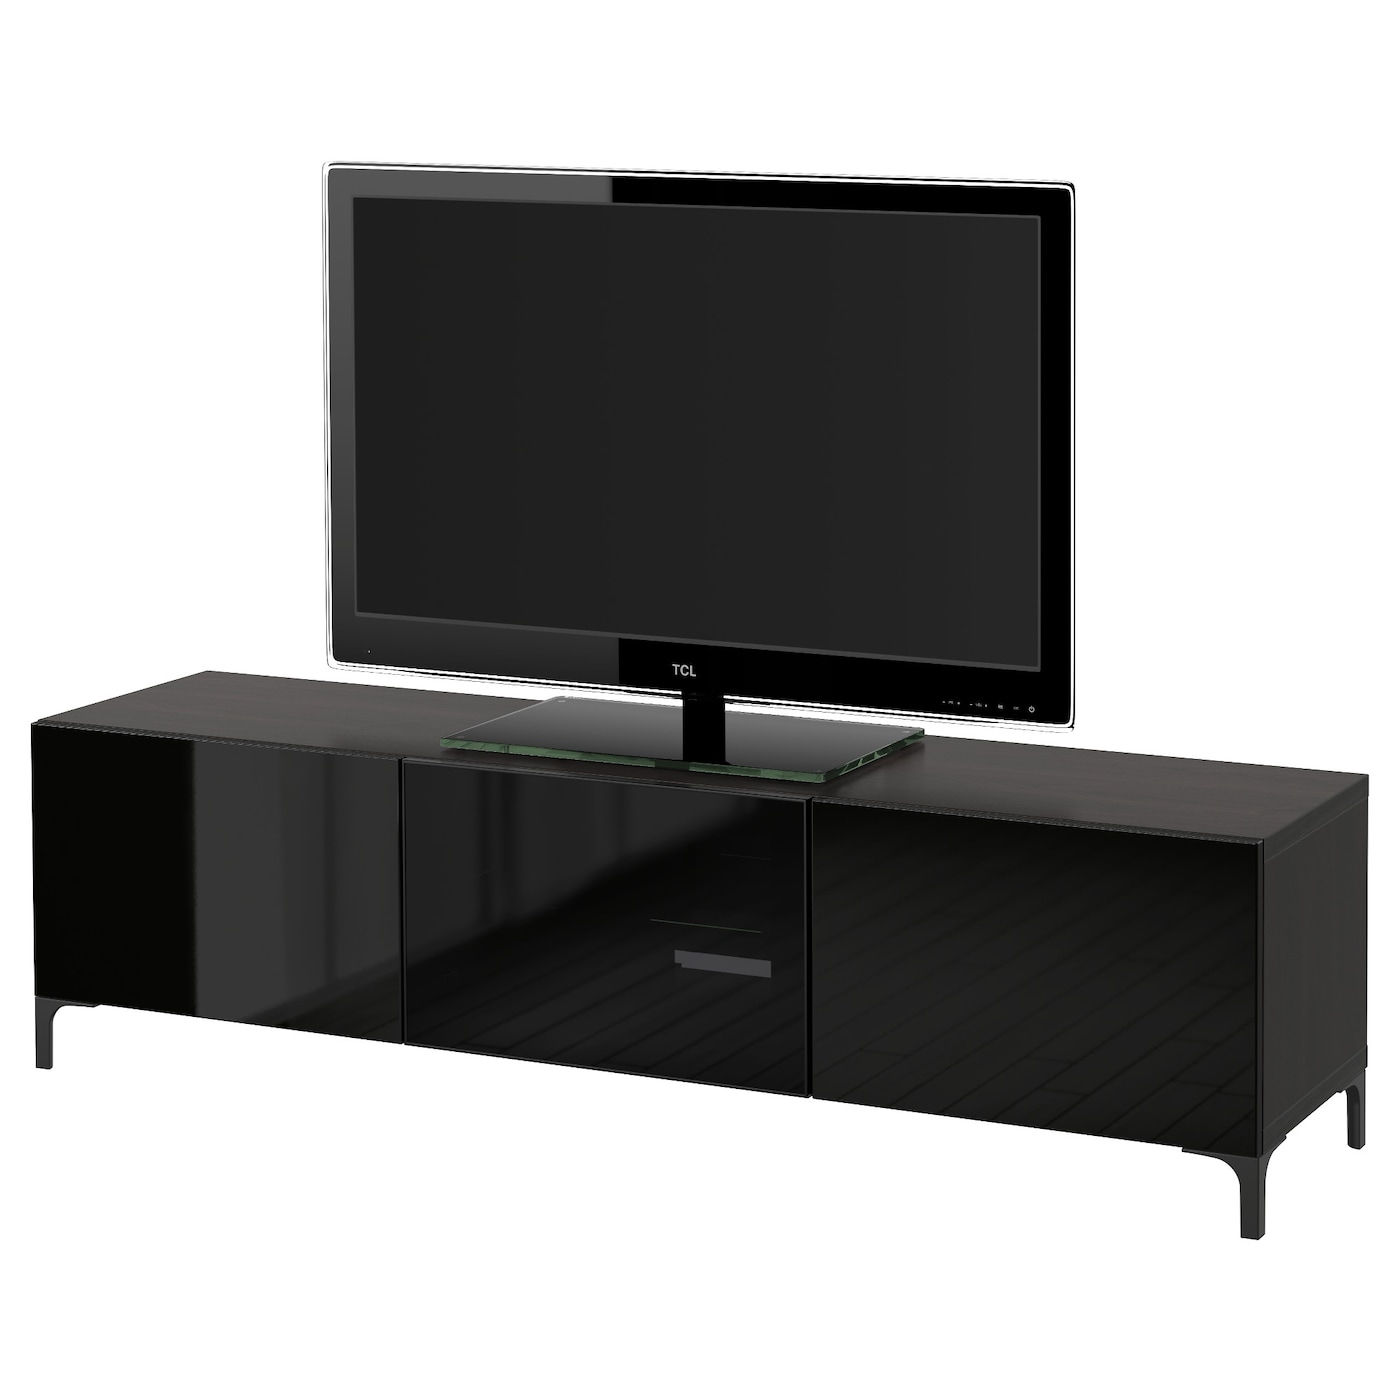 Best Tv Bench With Drawers And Door Black Brown Selsviken High Gloss Black Smoked Glass